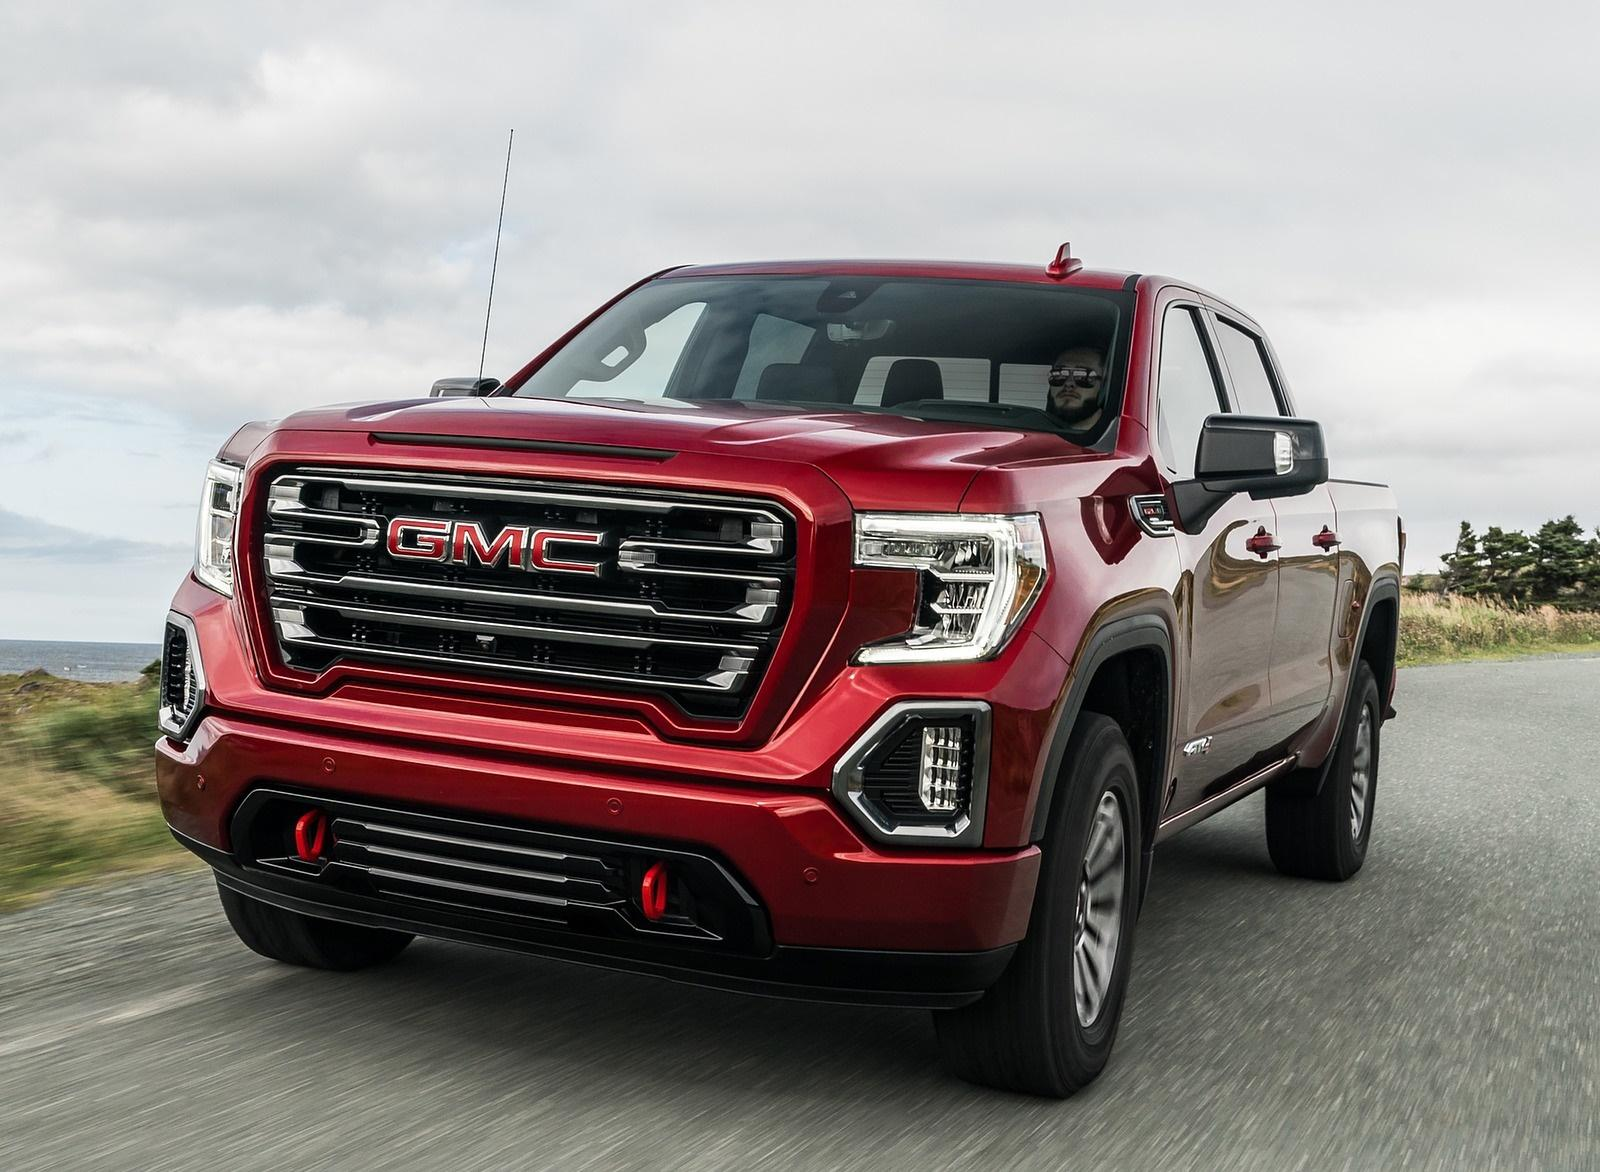 2019 GMC Sierra AT4 Wallpapers (36+ Images) - NewCarCars